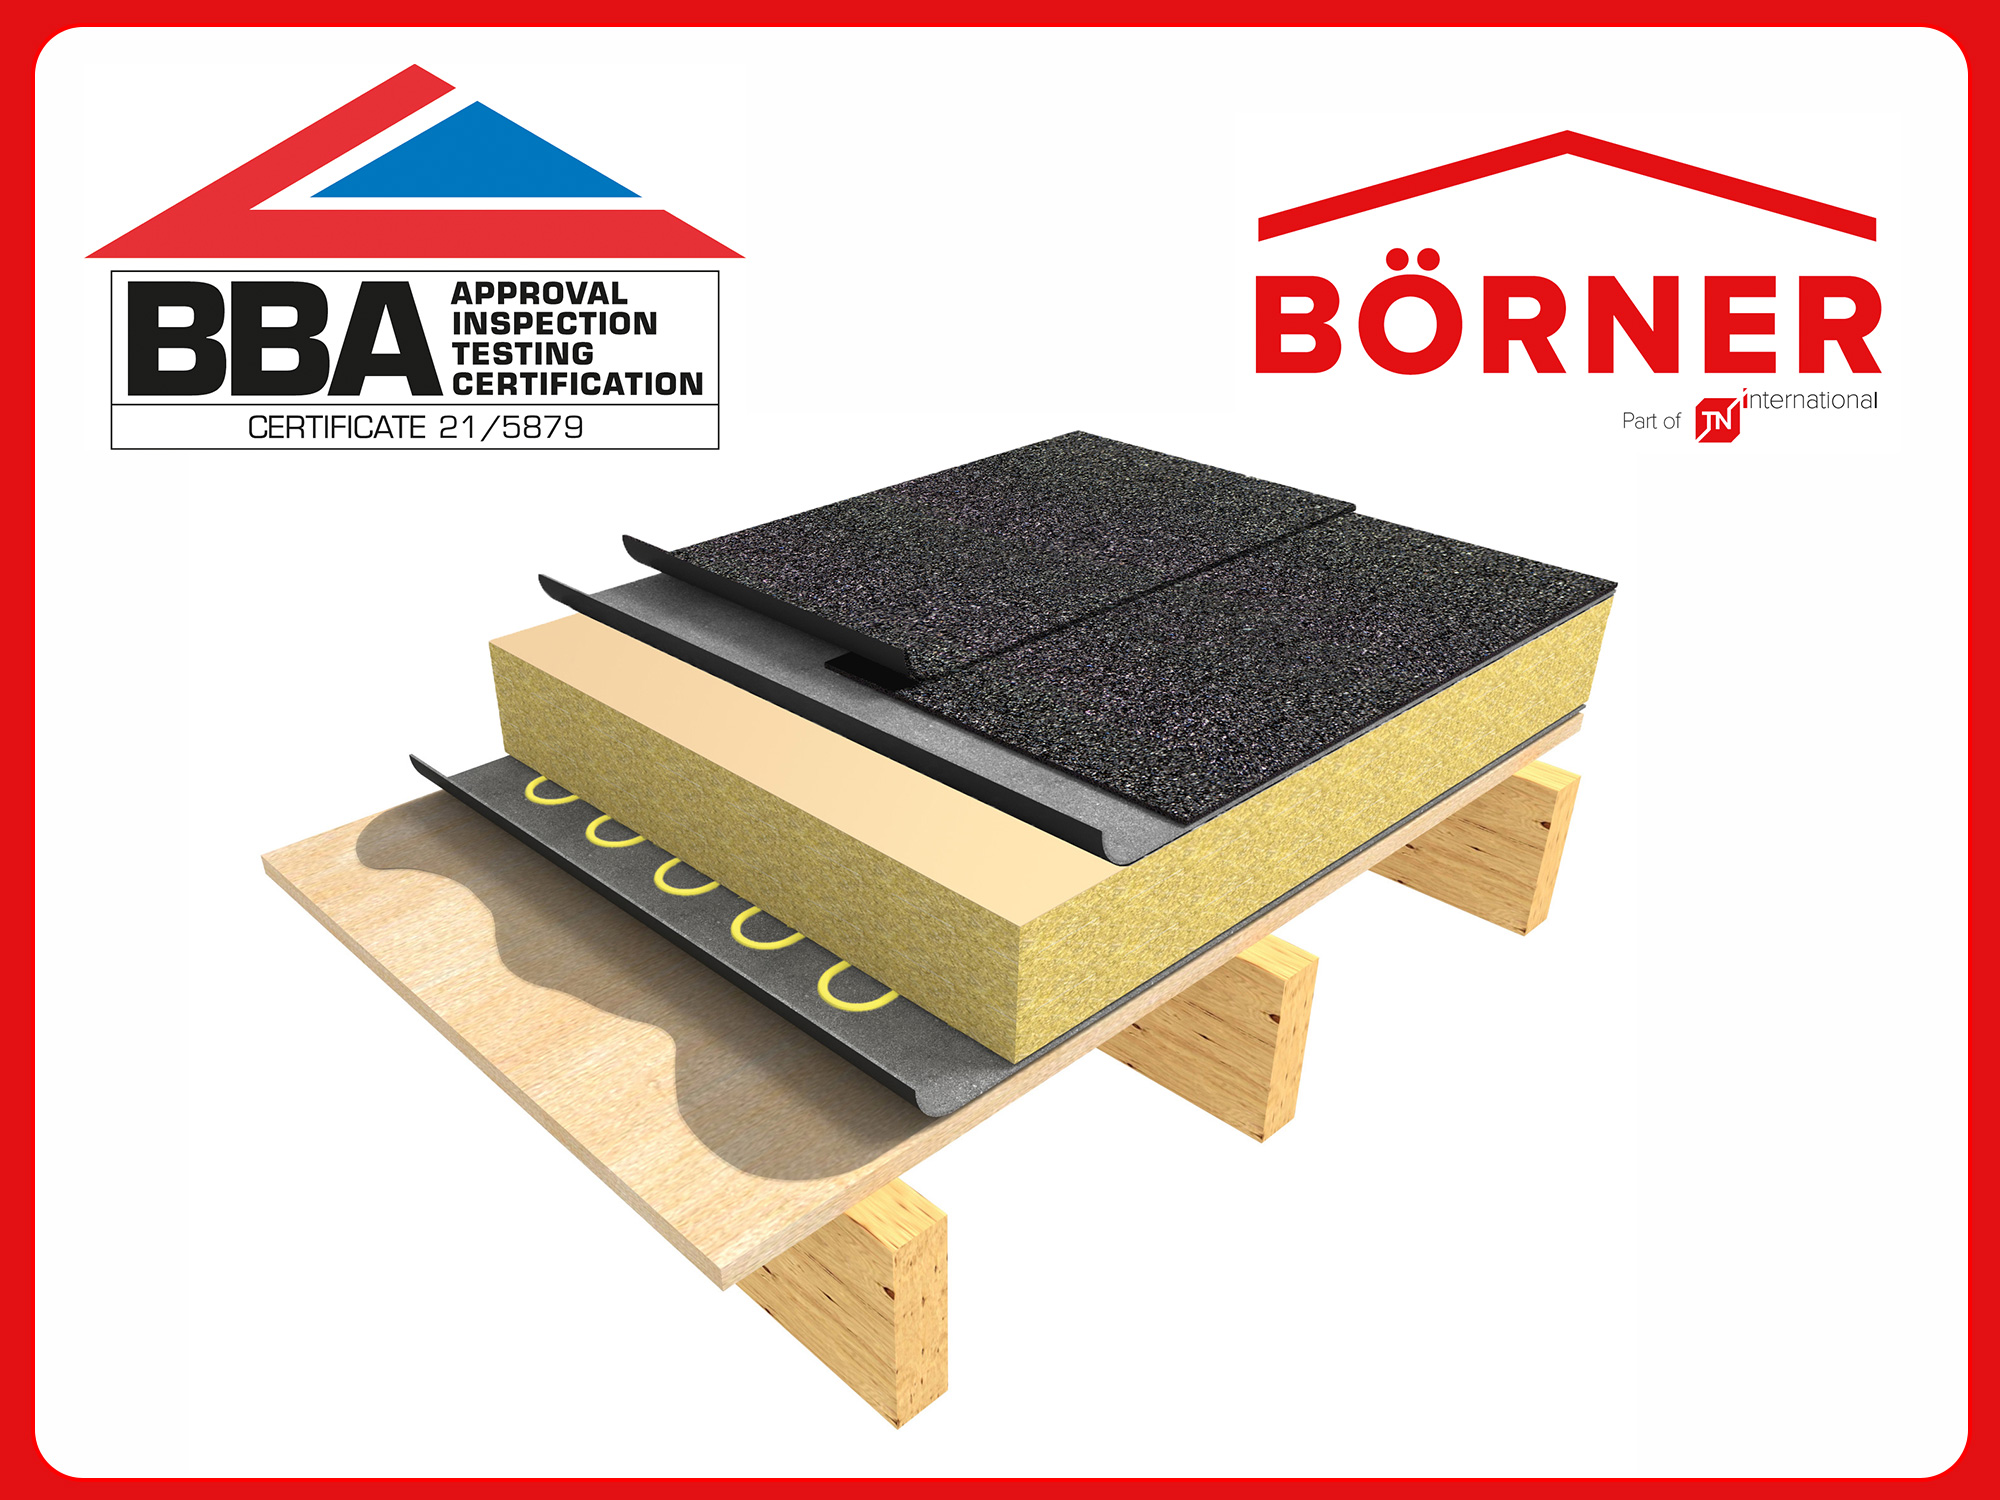 TN International gains BBA certification for its Börner roof waterproofing systems